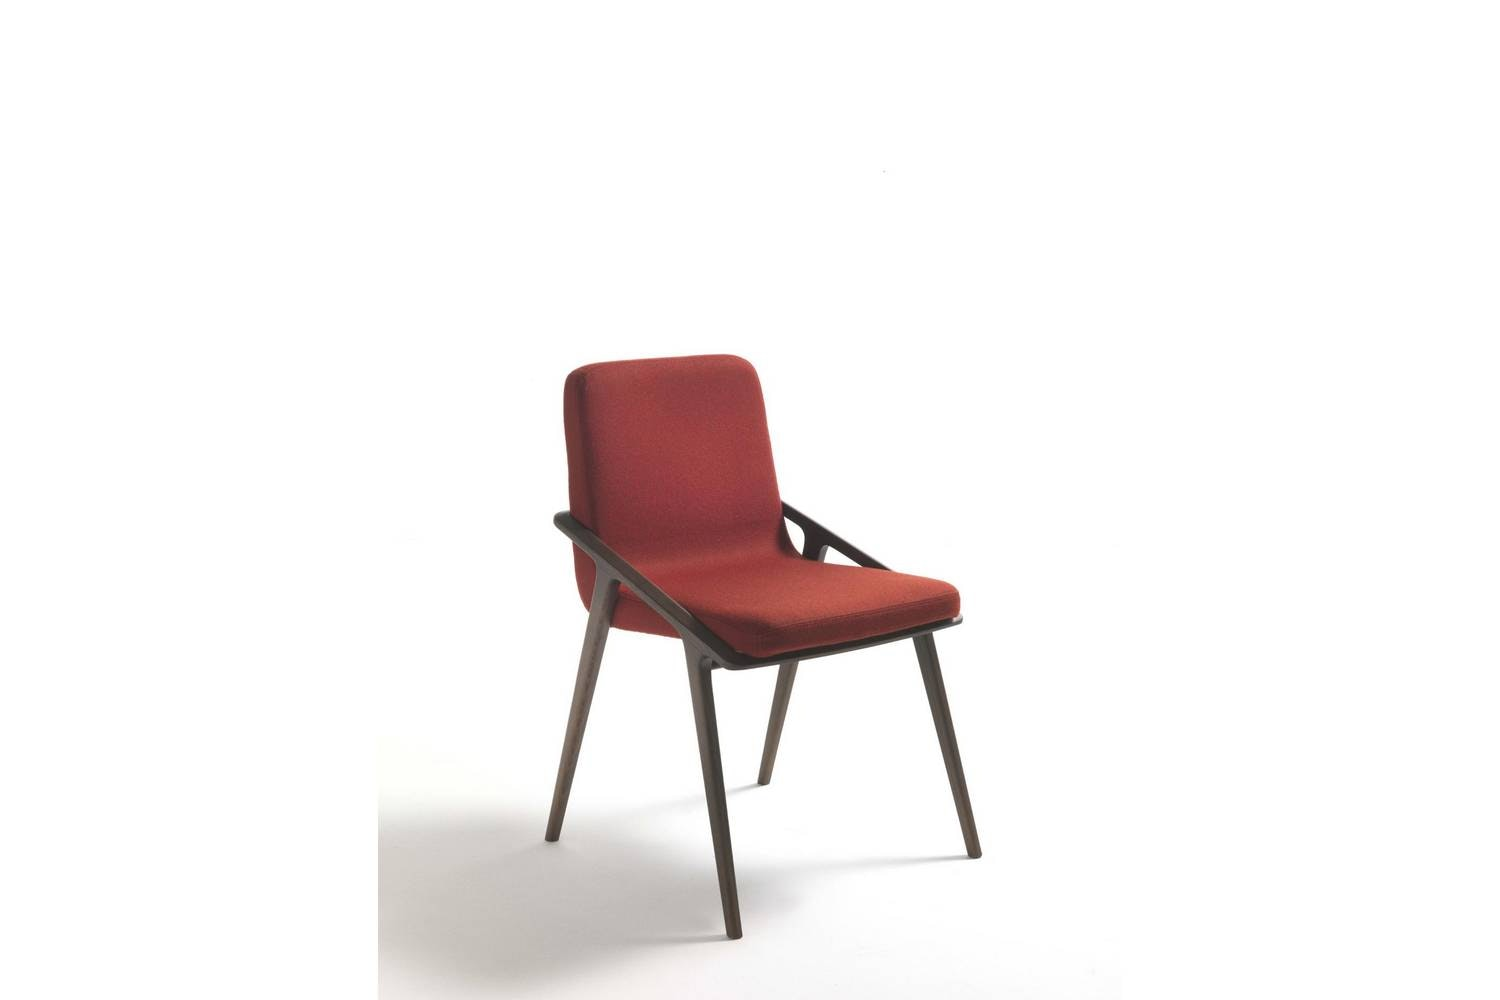 Lolita Chair by Emmanuel Gallina for Porada